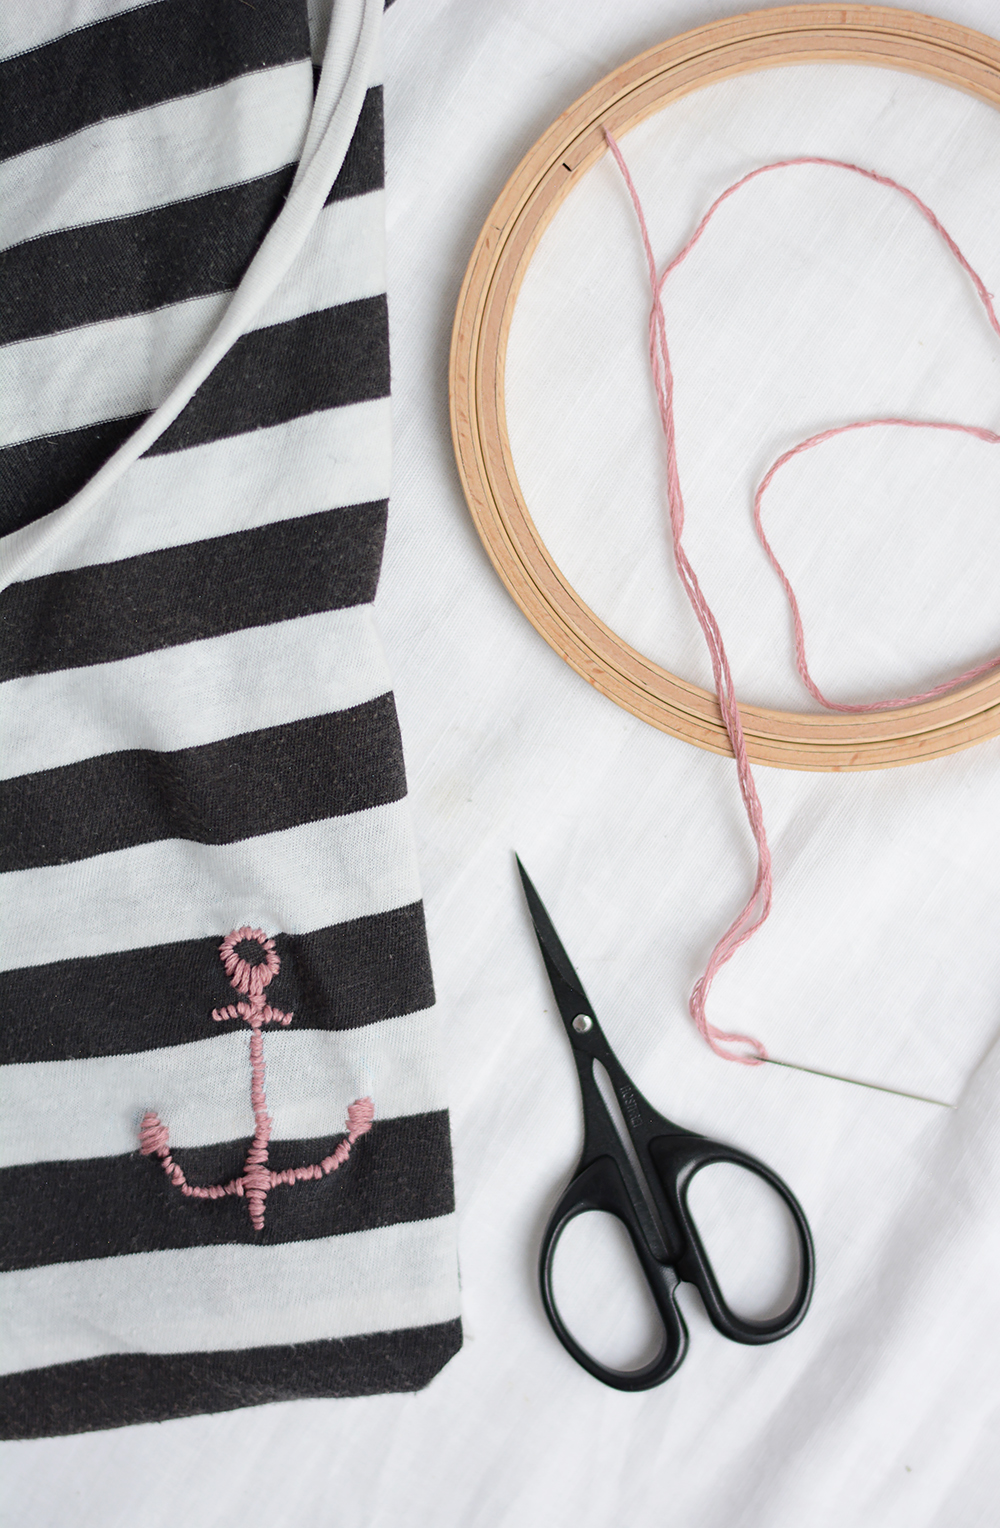 Anker-T-Shirt: DIY | we love handmade